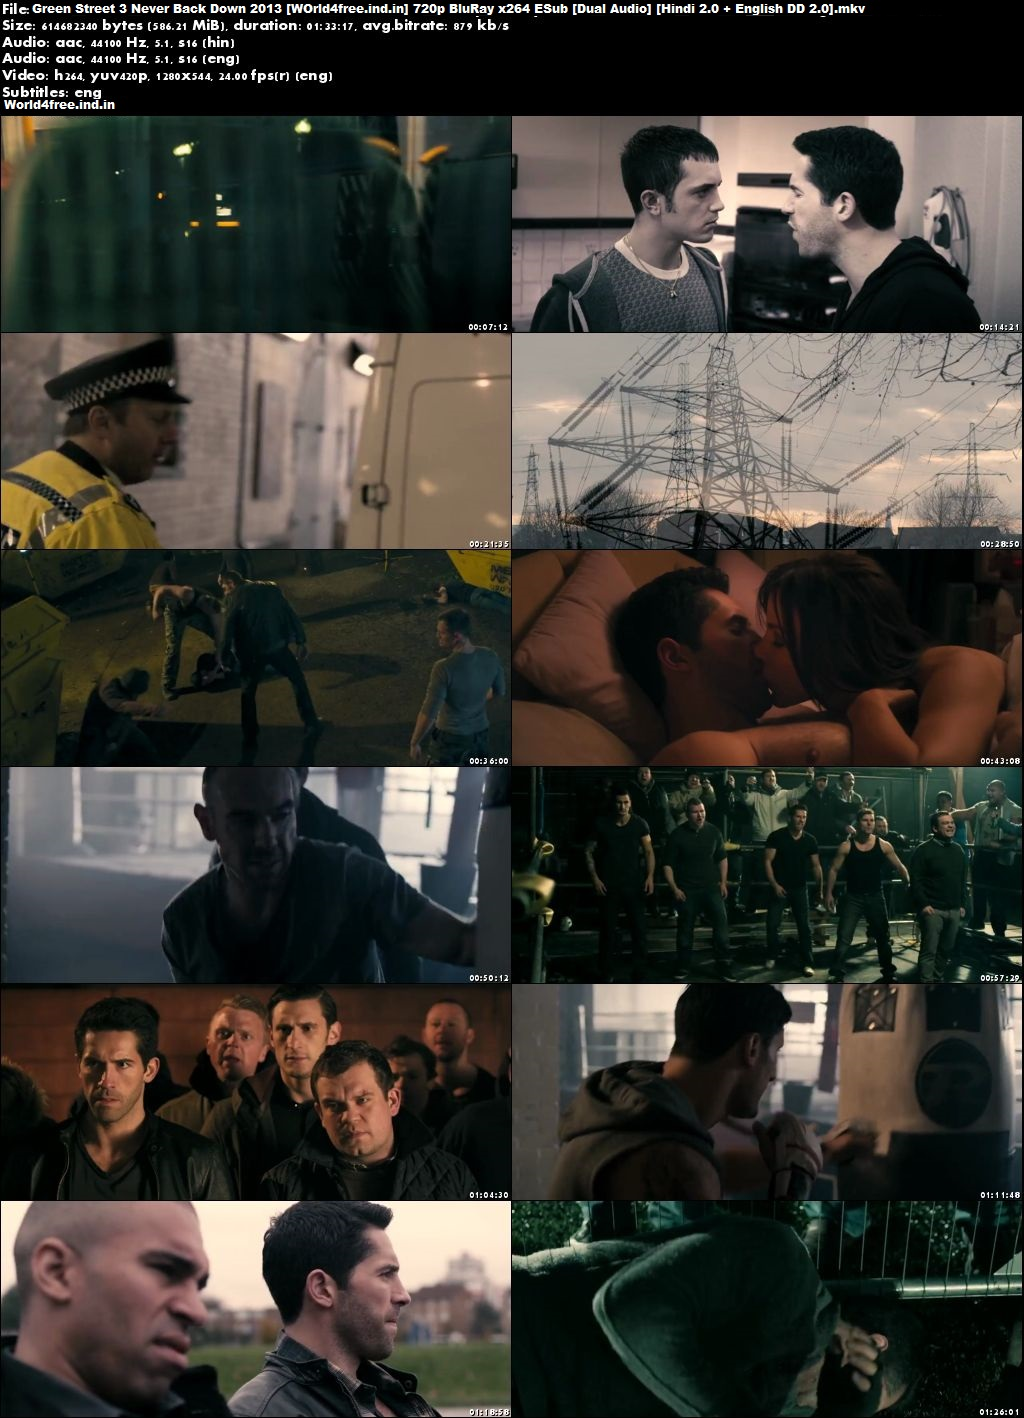 Green Street 3: Never Back Down 2013 world4free.ind.in BRRip Dual Audio